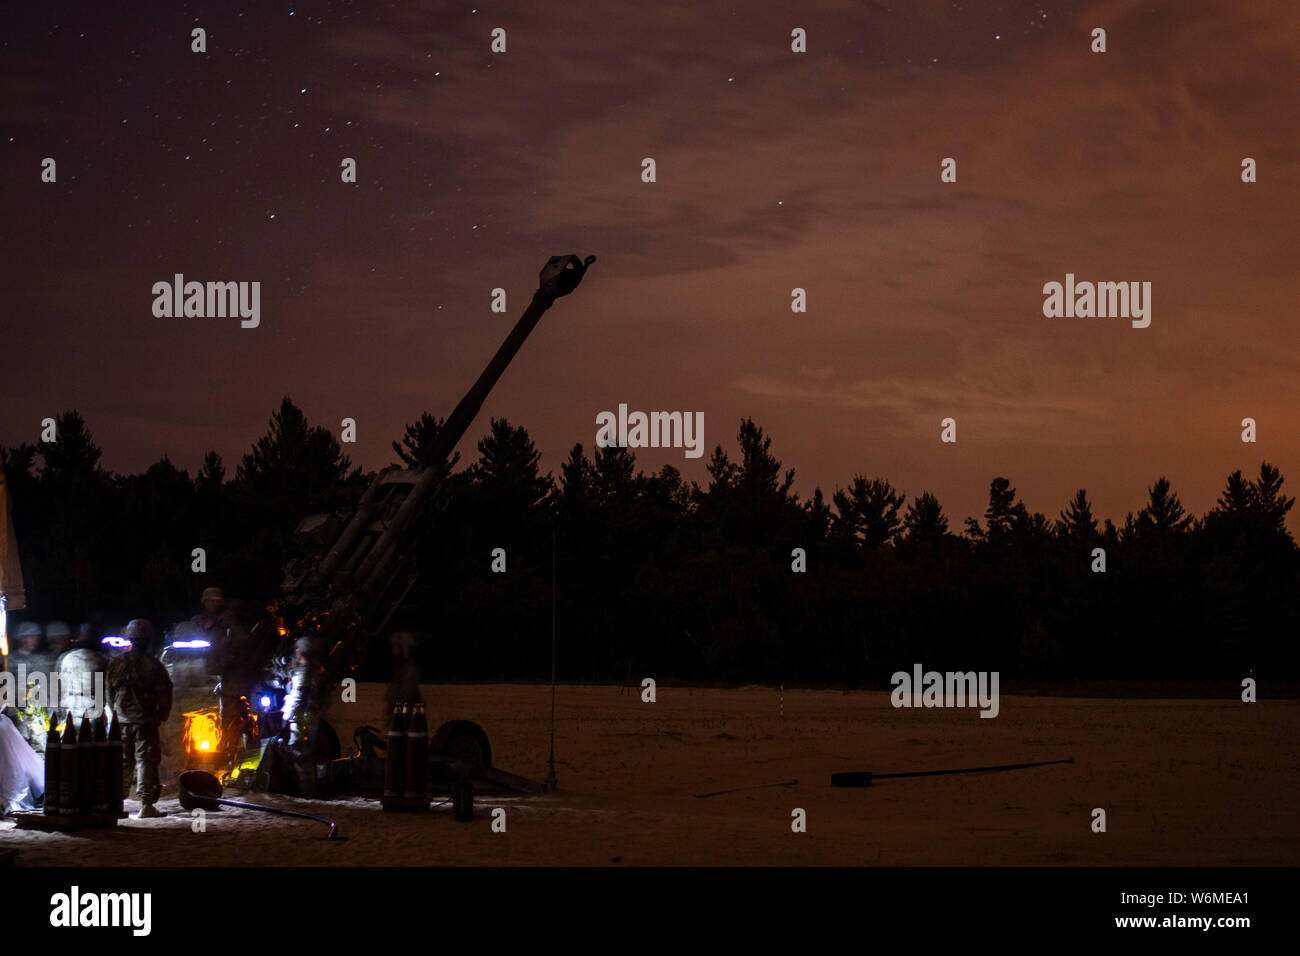 Soldiers assigned to the 1st Battalion, 258th Field Artillery of the New York Army National Guard conduct night fire training with the M-777A2 howtizer at Fort Drum, New York during their annual training on July 30, 2019. ( U.S. Army National Guard photo by Sgt. Matthew Gunther) Stock Photo